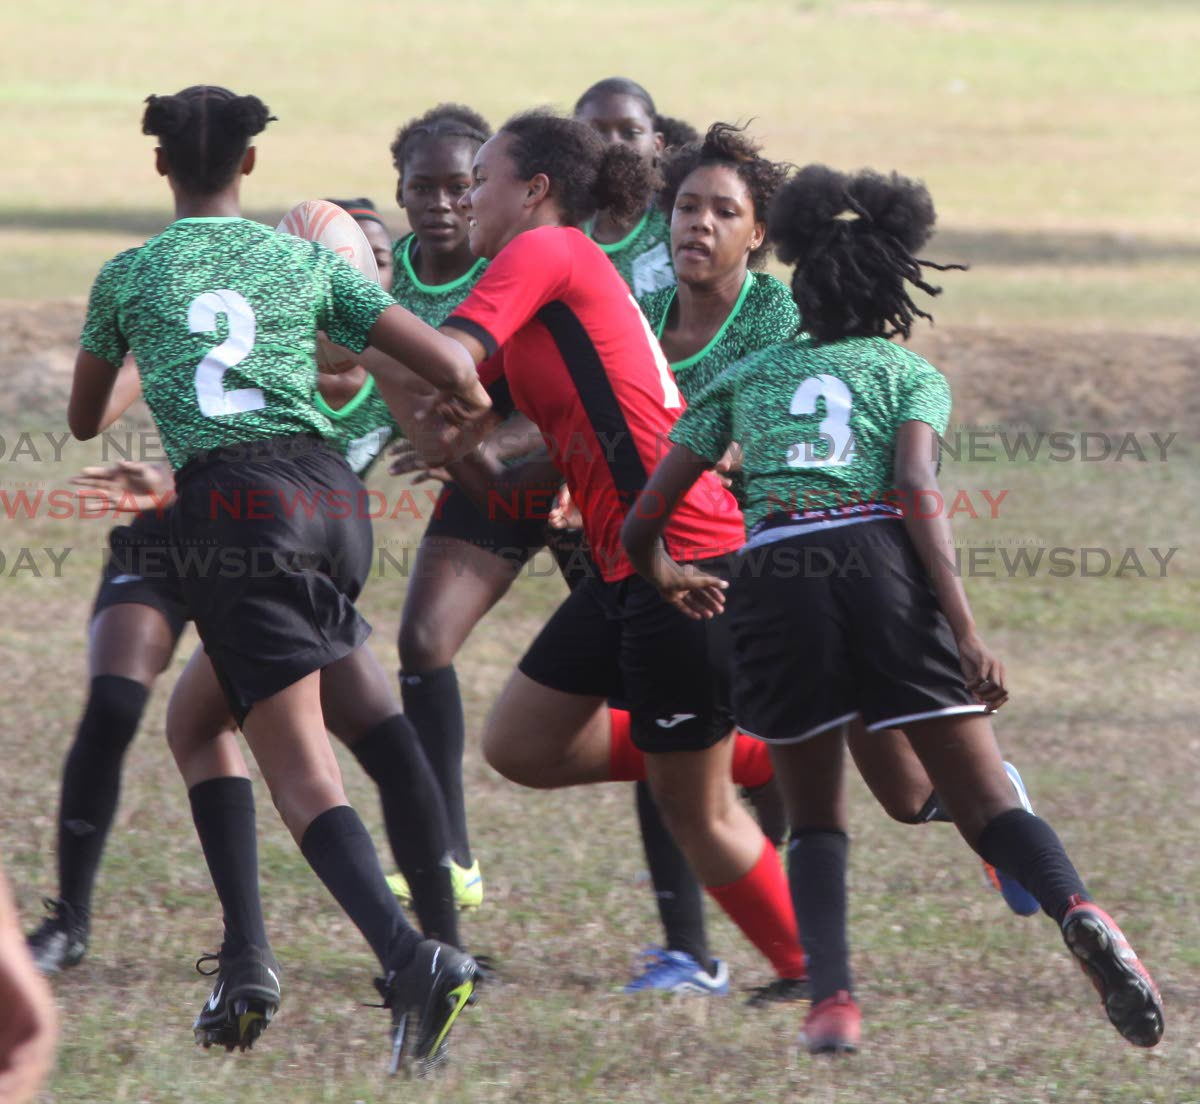 Bishop Anstey Crowned School Rugby Champs